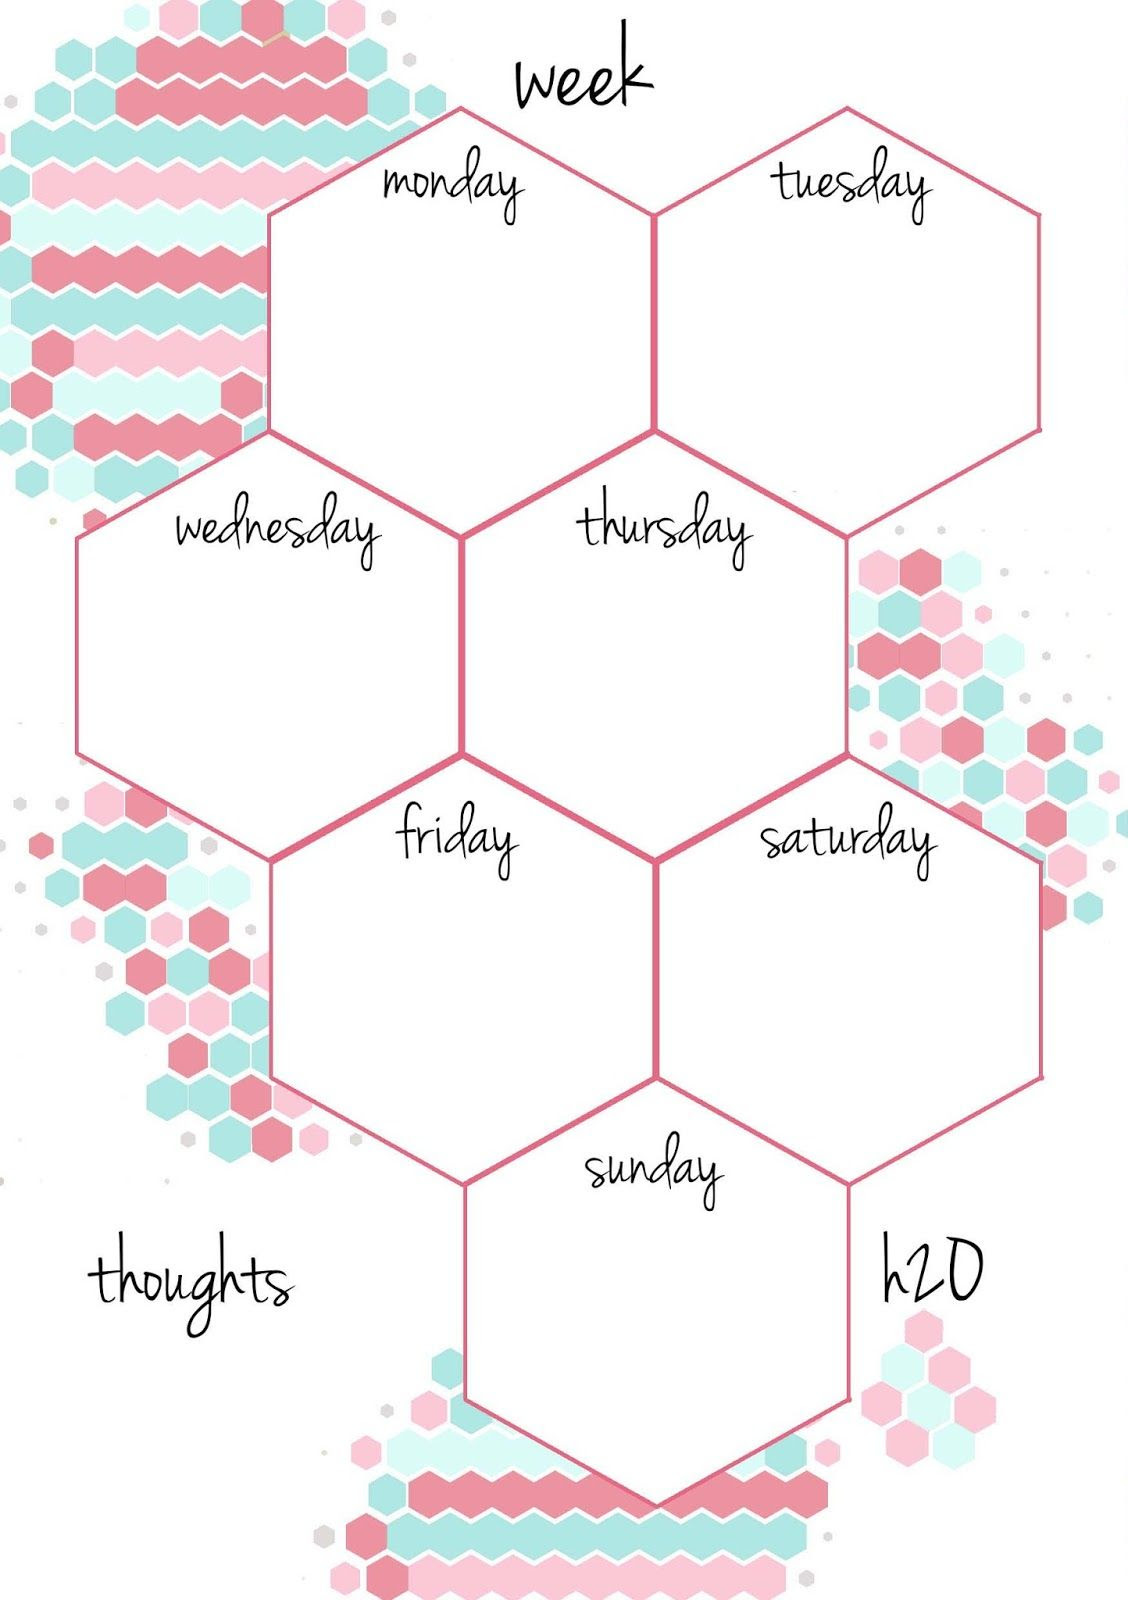 1000+ ideas about Weekly Planner on Pinterest   Planners, Planner ...